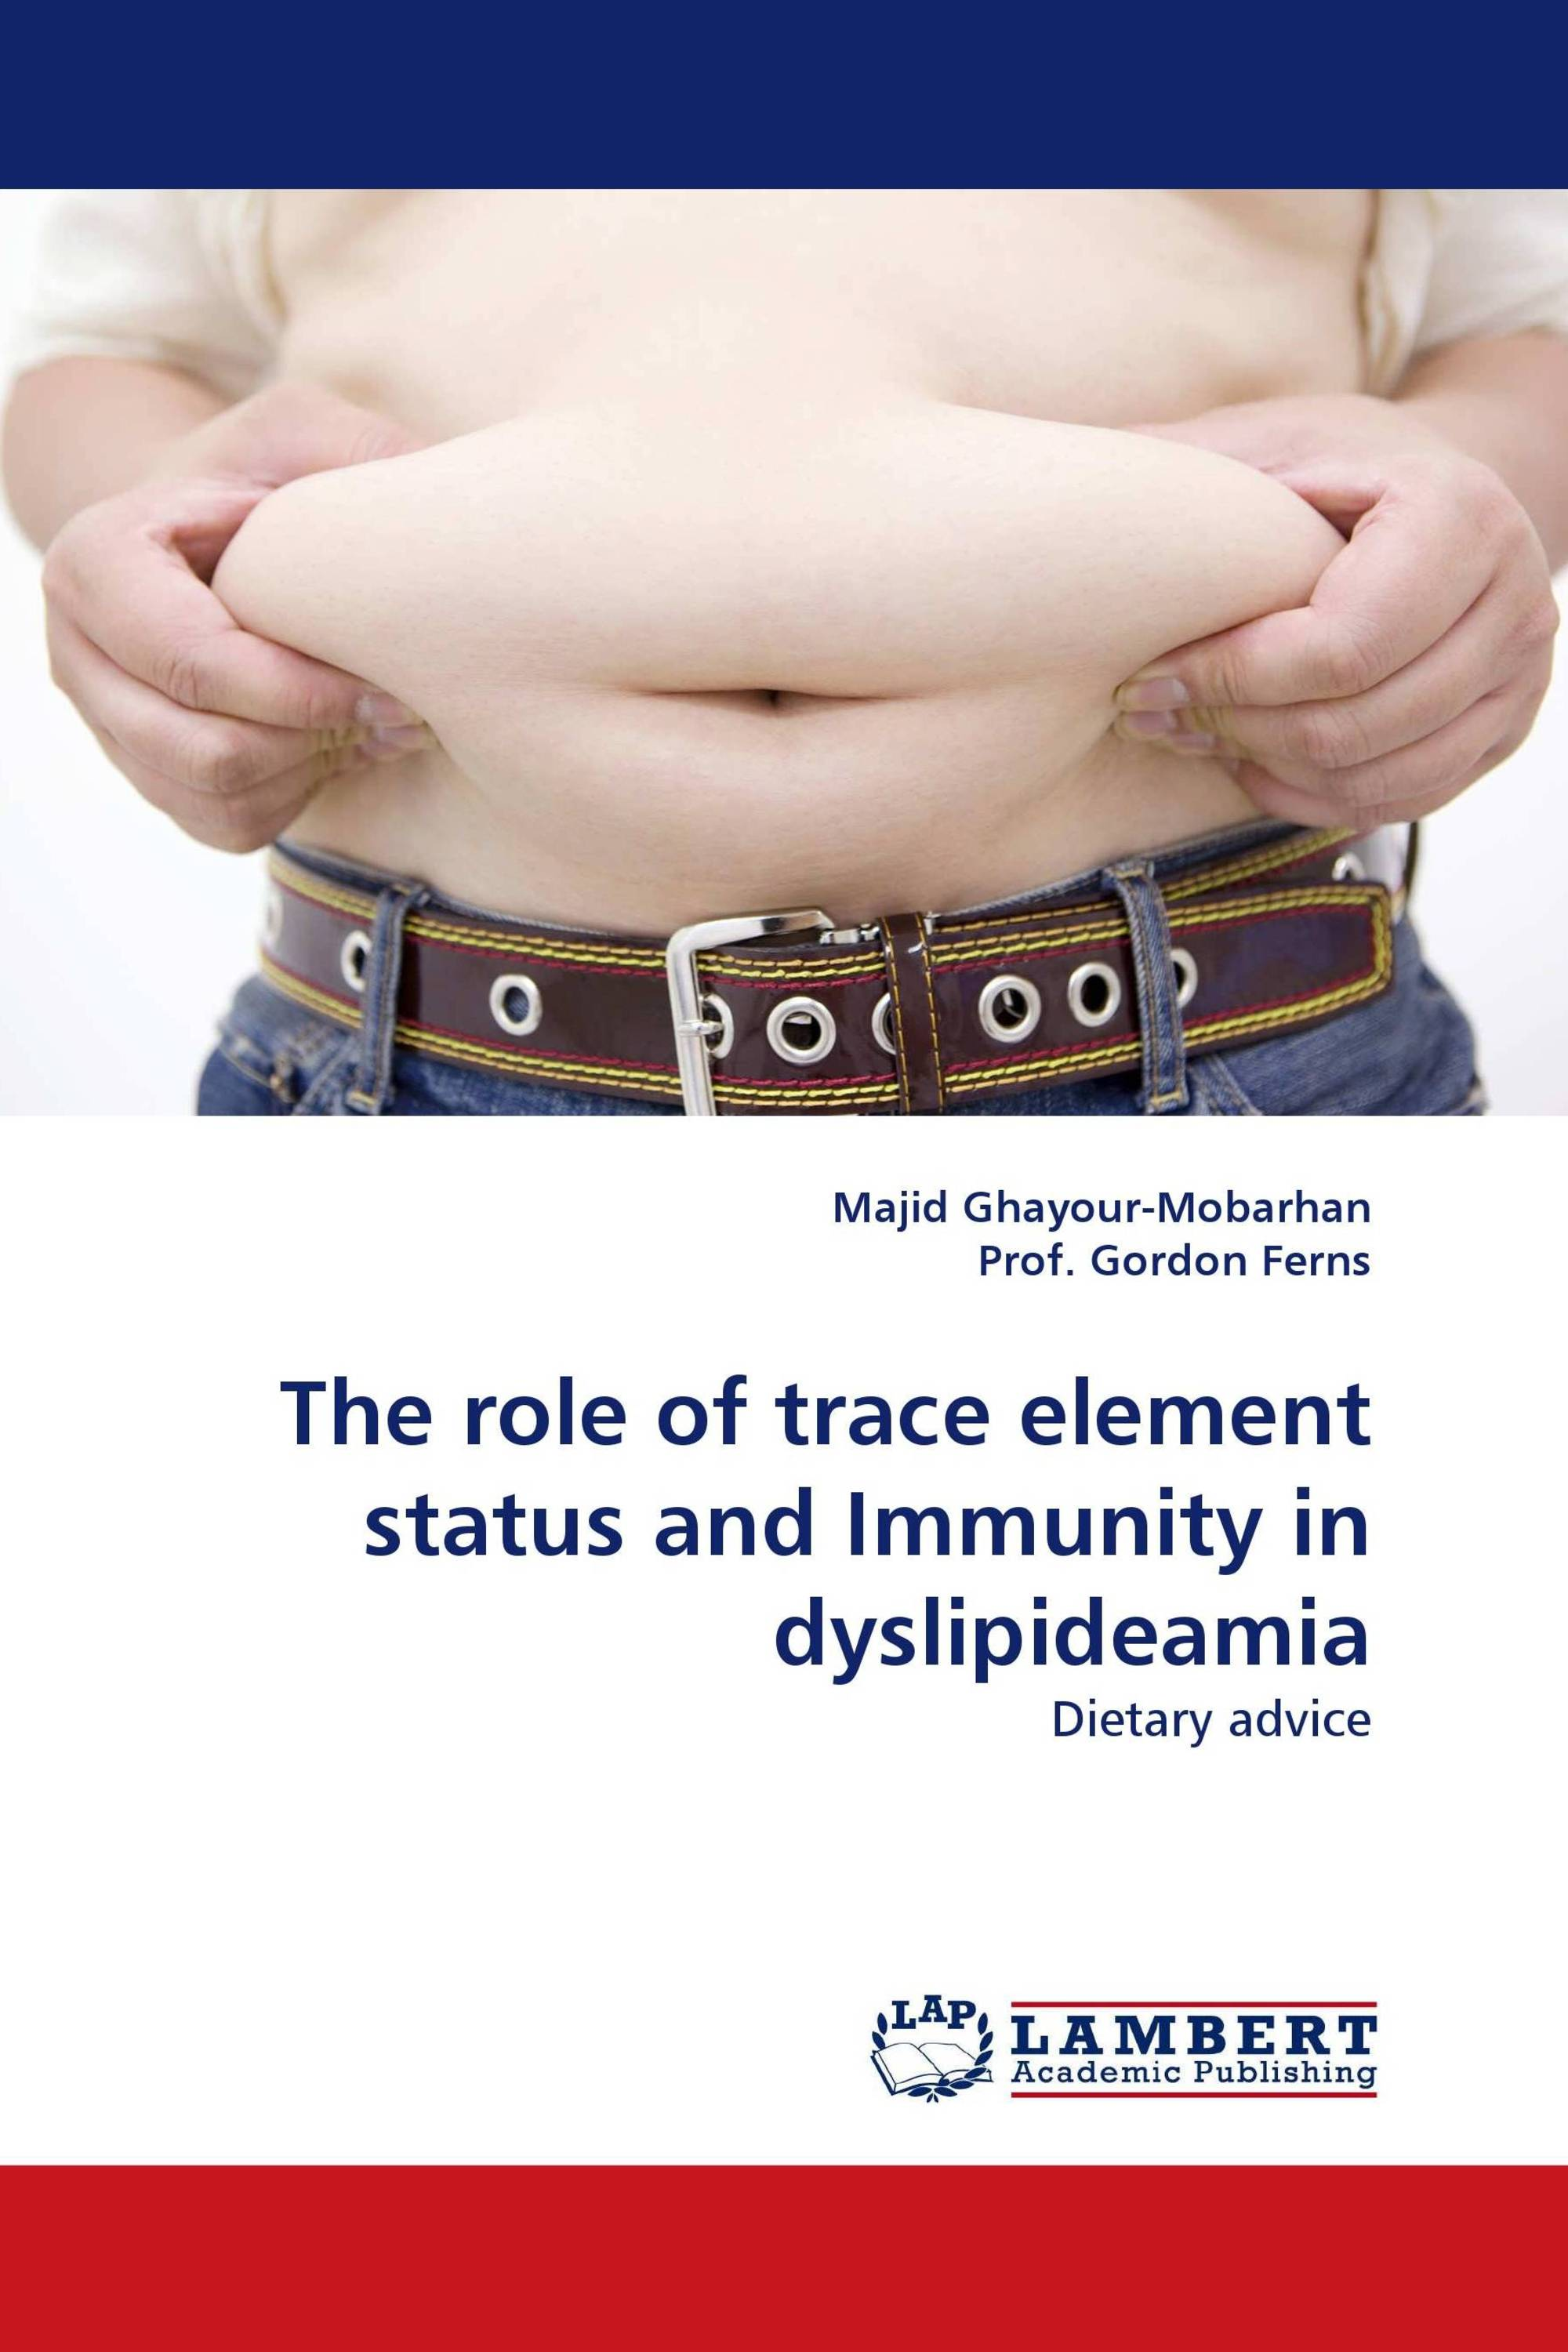 The role of trace element status and Immunity in dyslipideamia